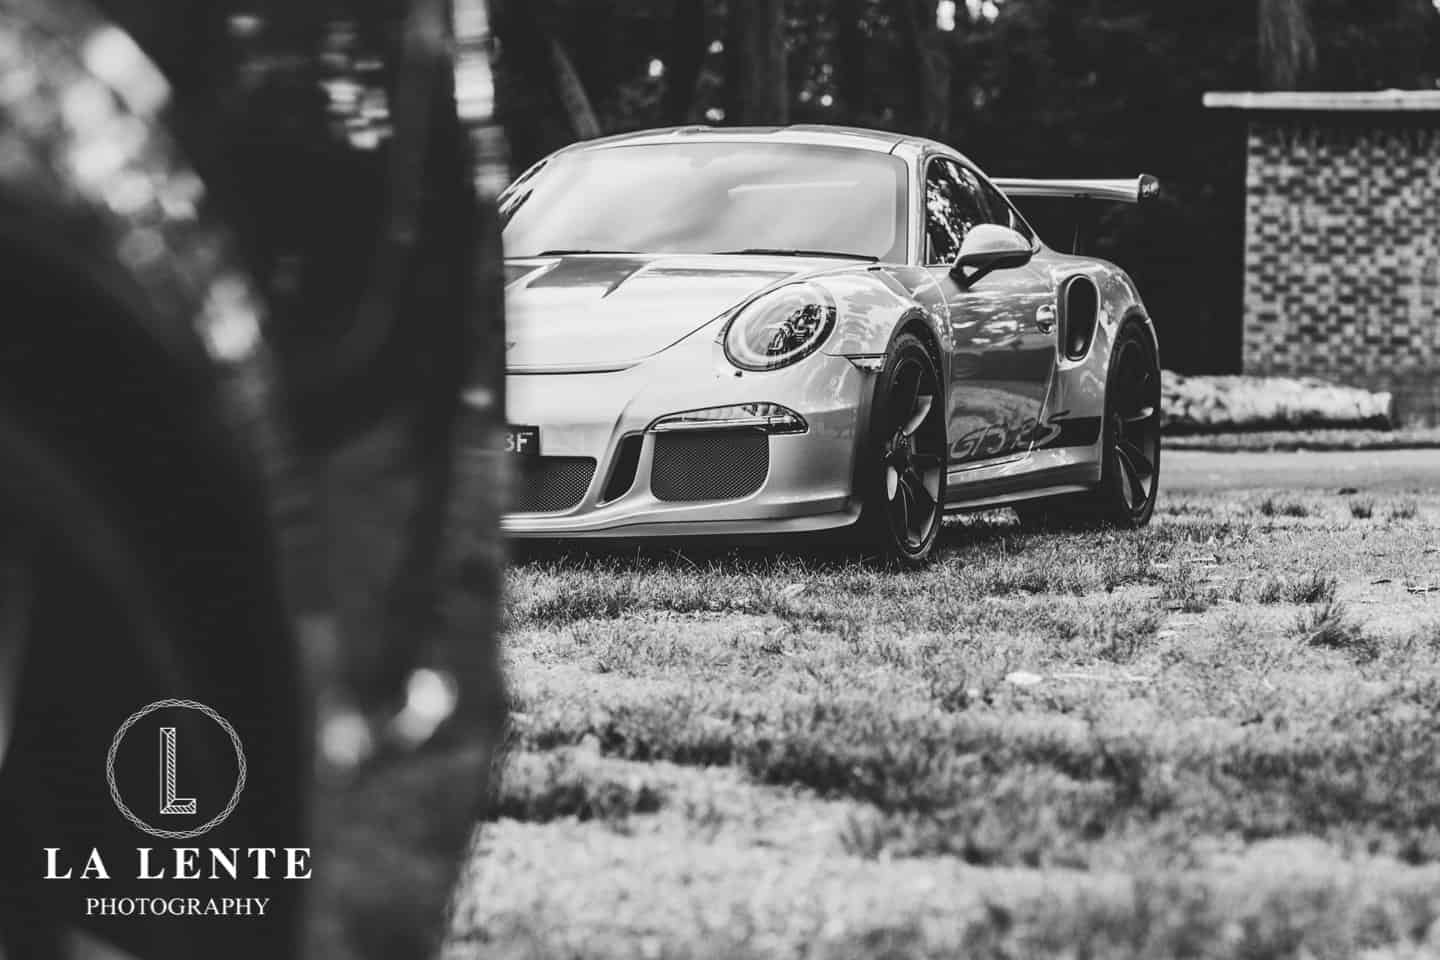 Autobrunch-car-photos-by-La-Lente-Photography-Jun-2017-8